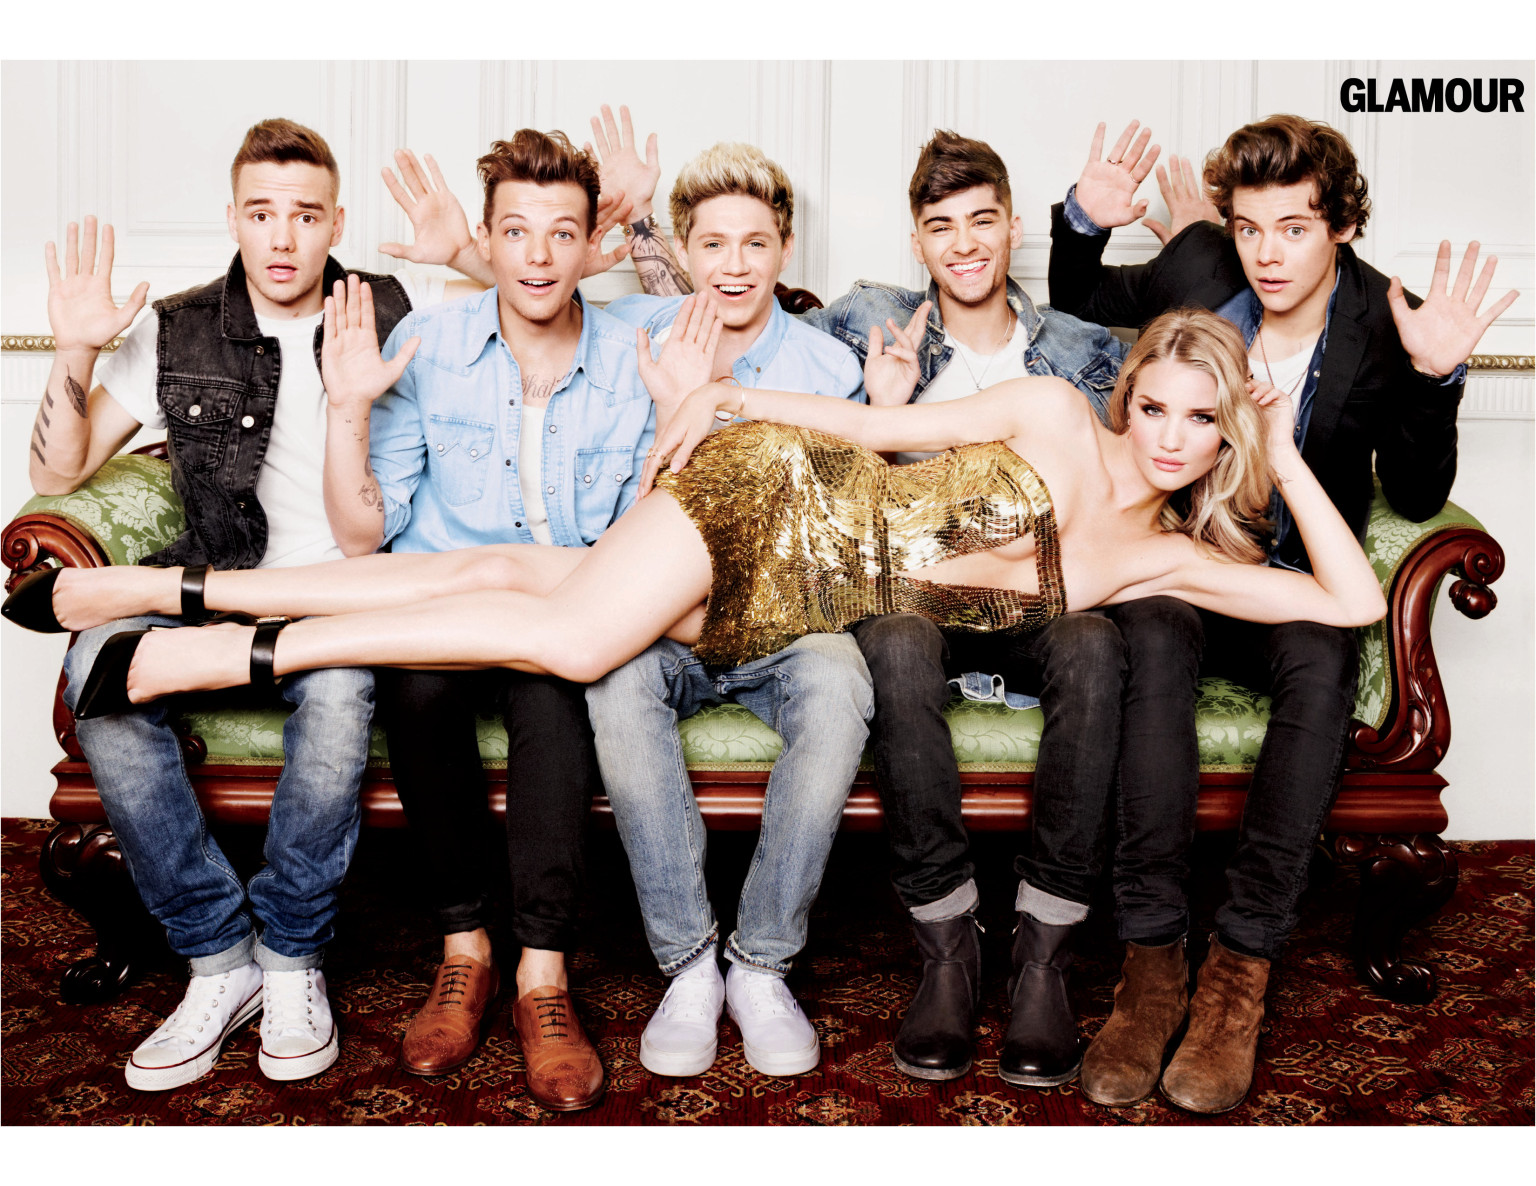 One Direction Photo: One Direction 'Glamour' Interview: Boy Band Cover August